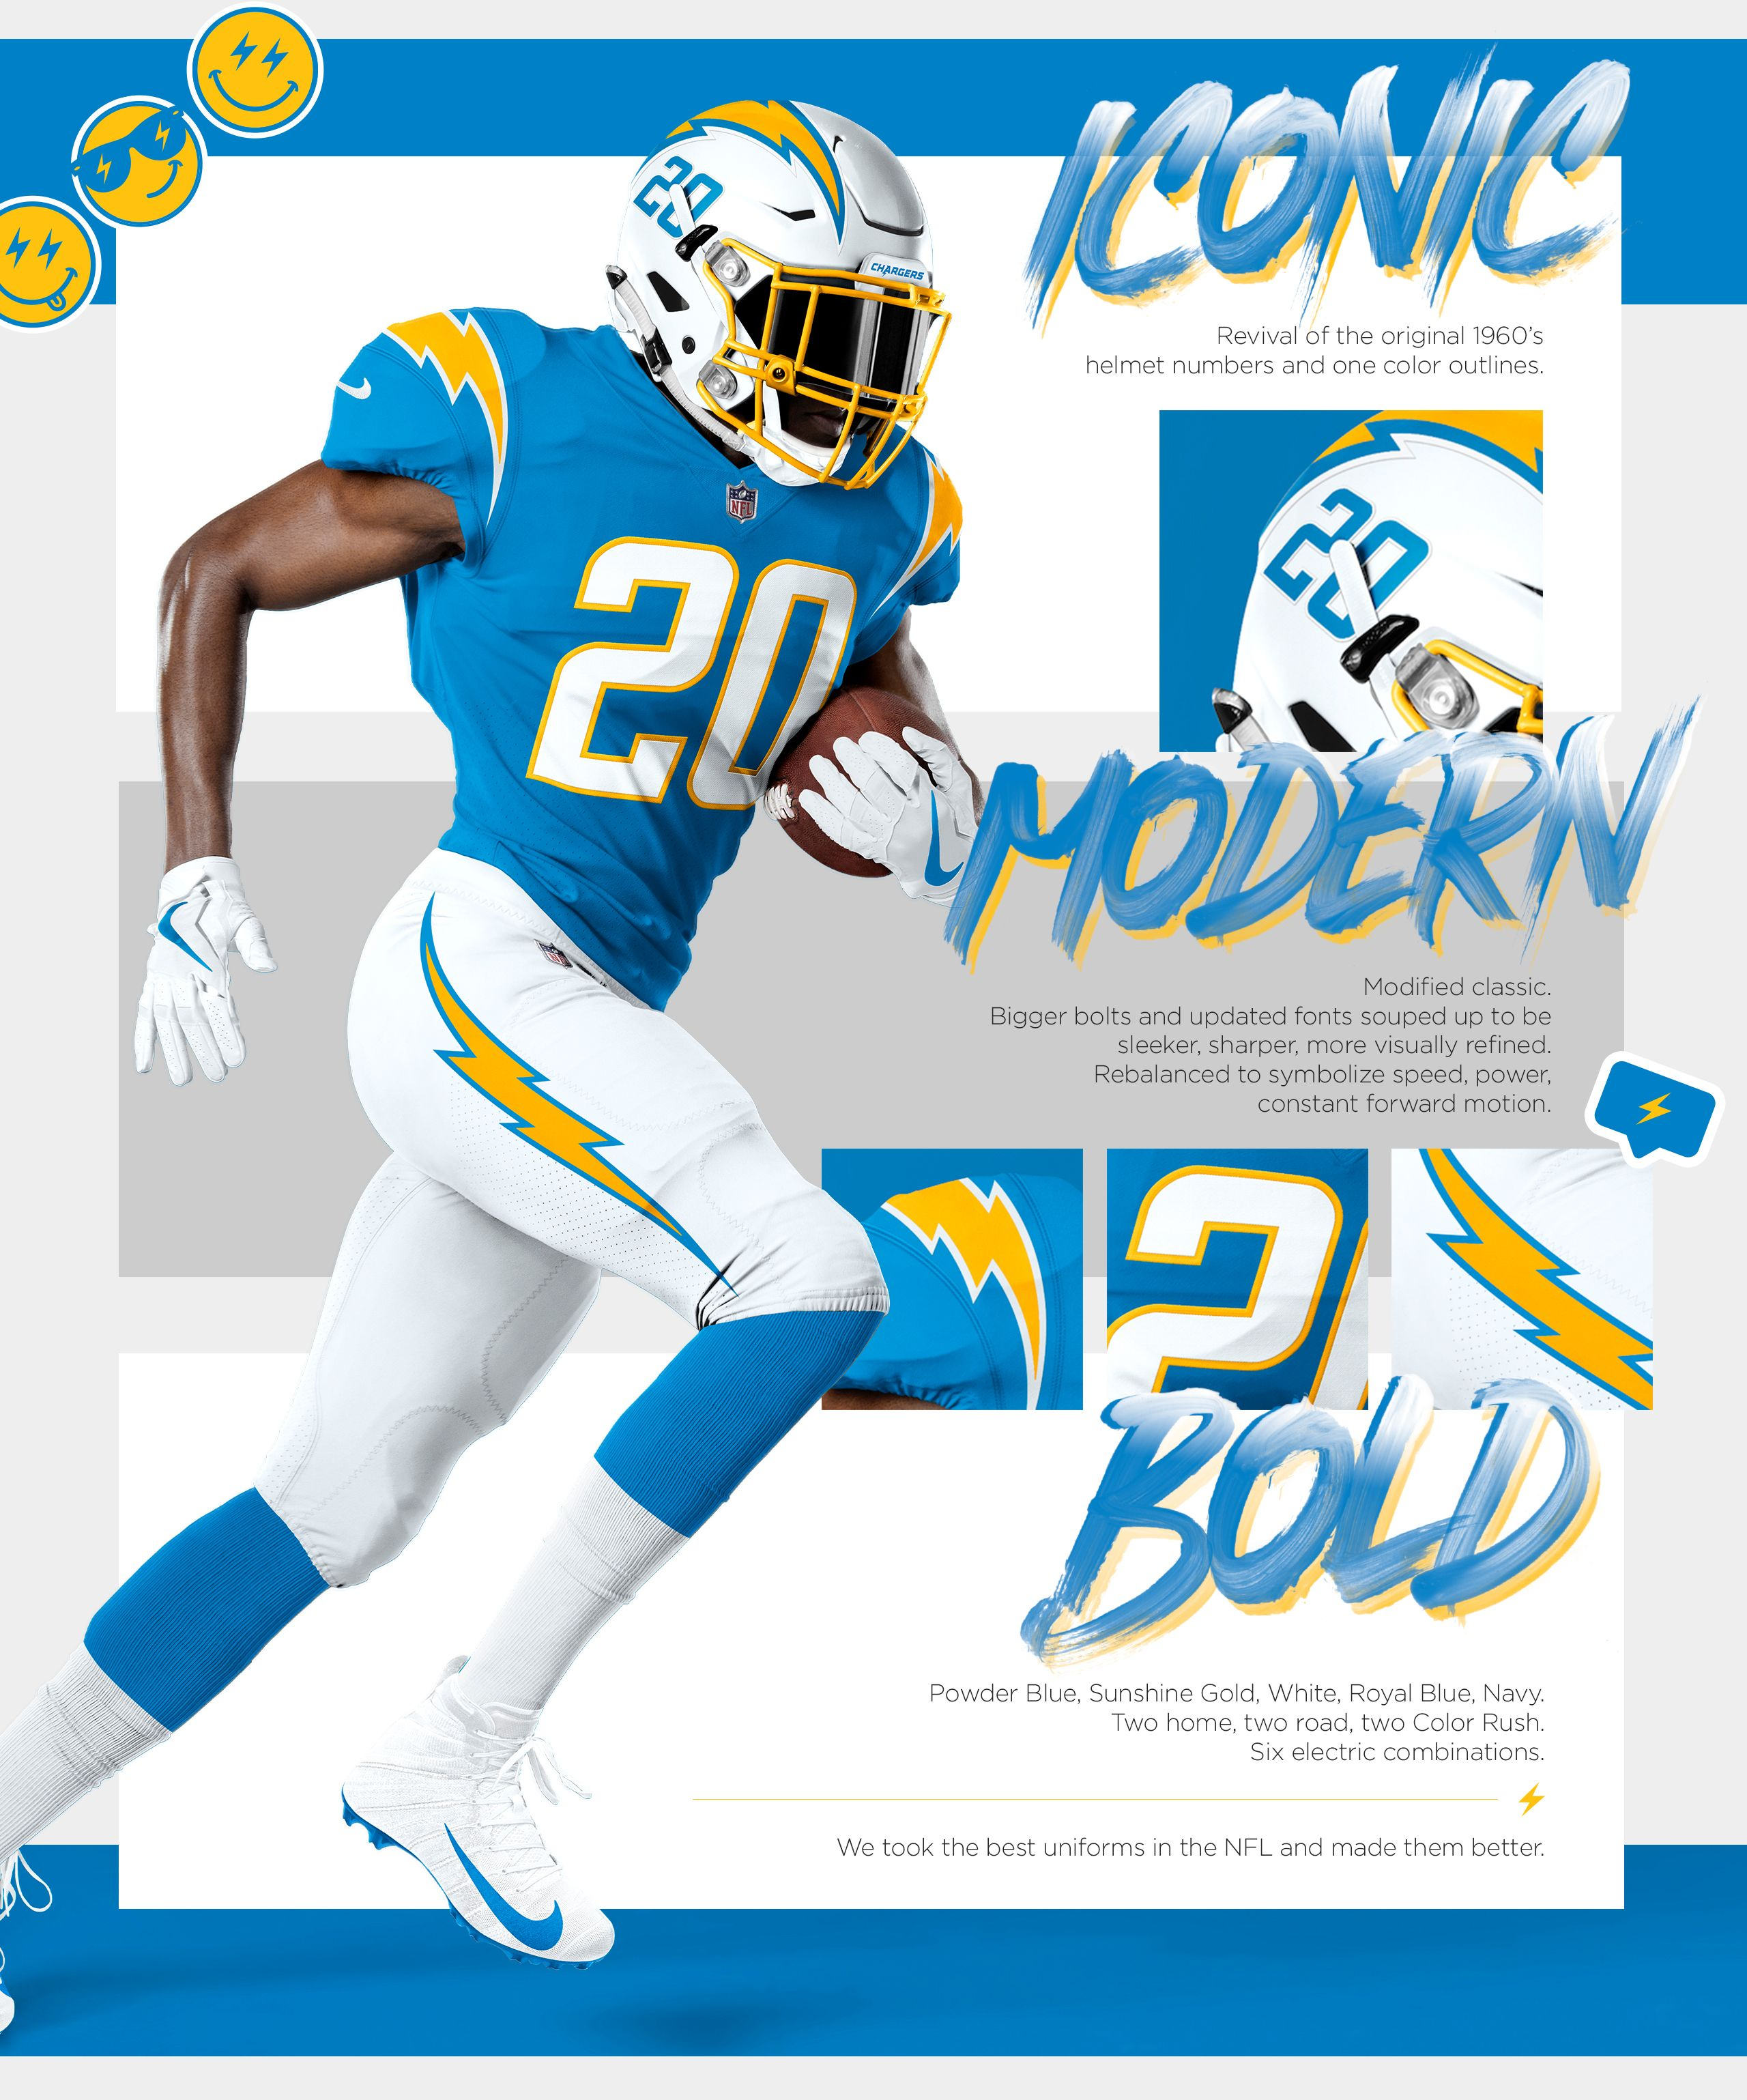 New Uniforms Los Angeles Chargers Chargers Com